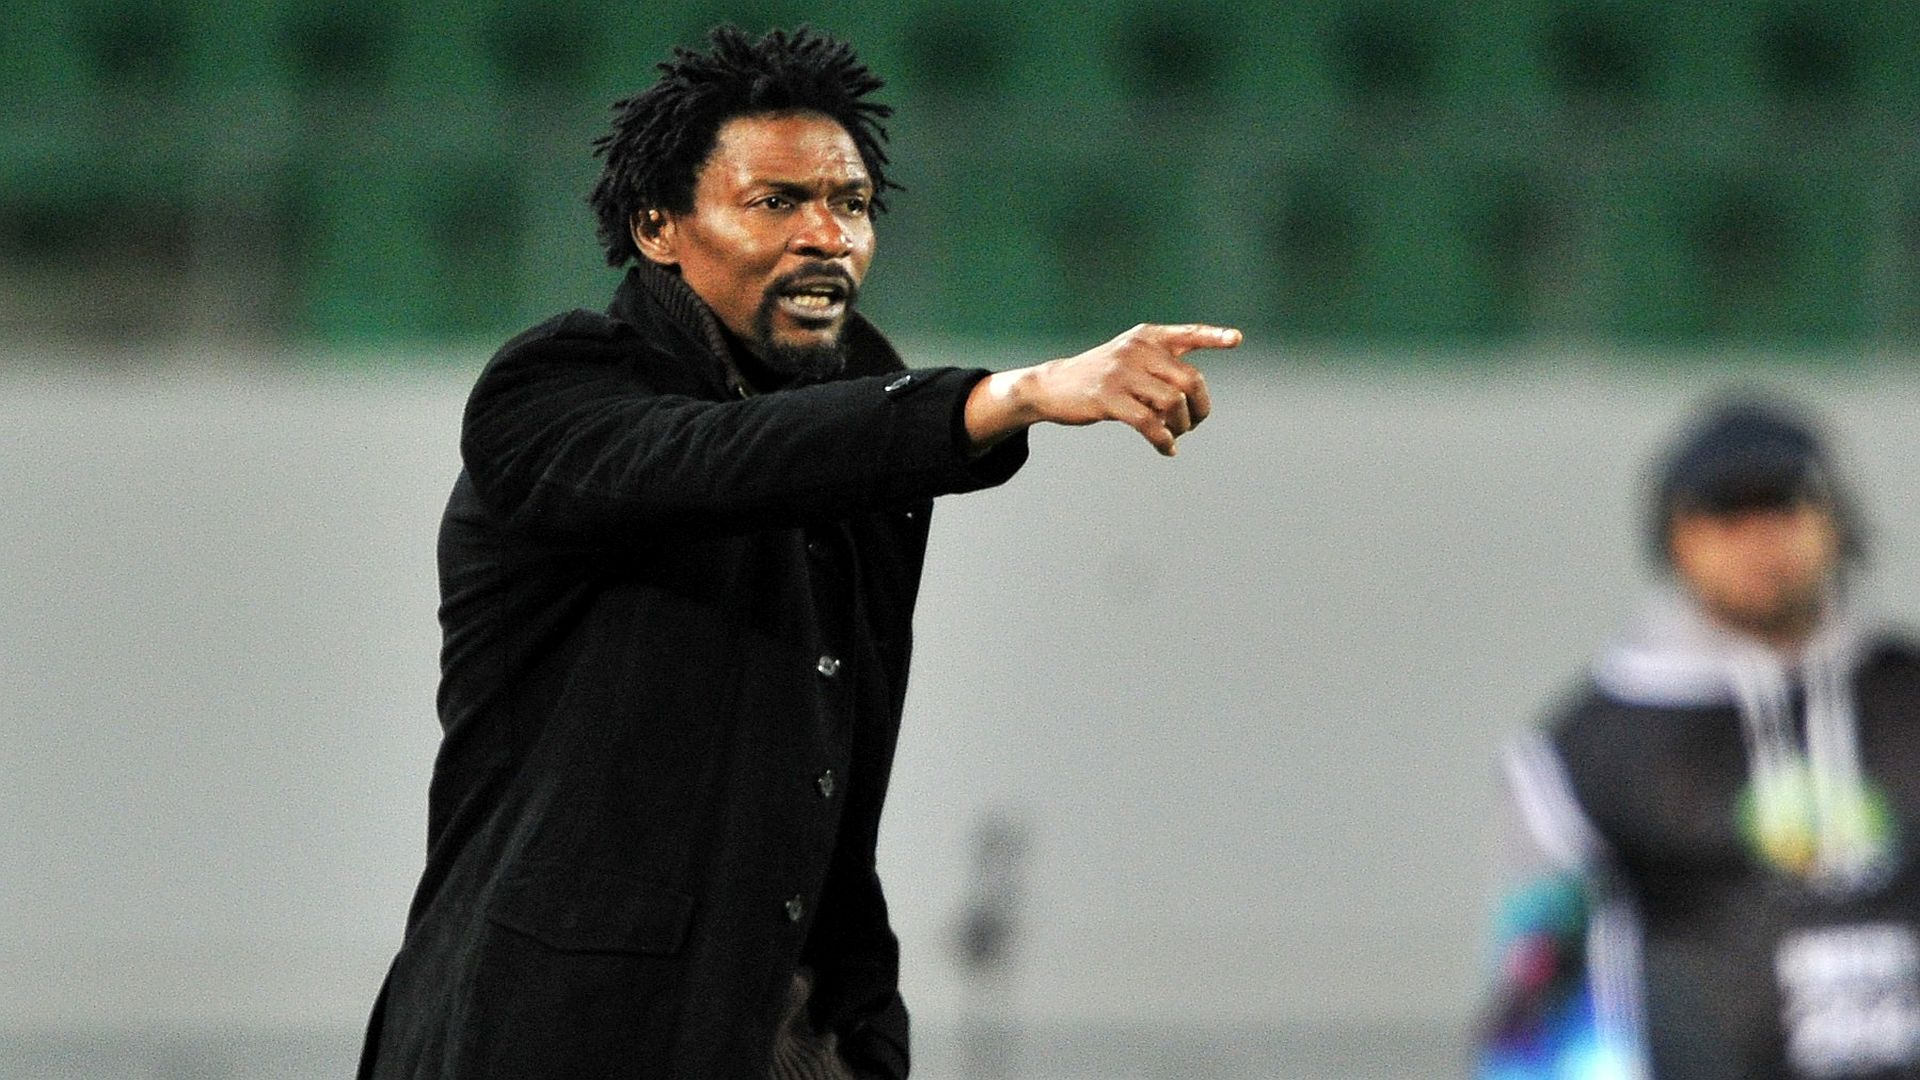 U23 Afcon: Cameroon coach Song relishing clash against Tanko's Ghana